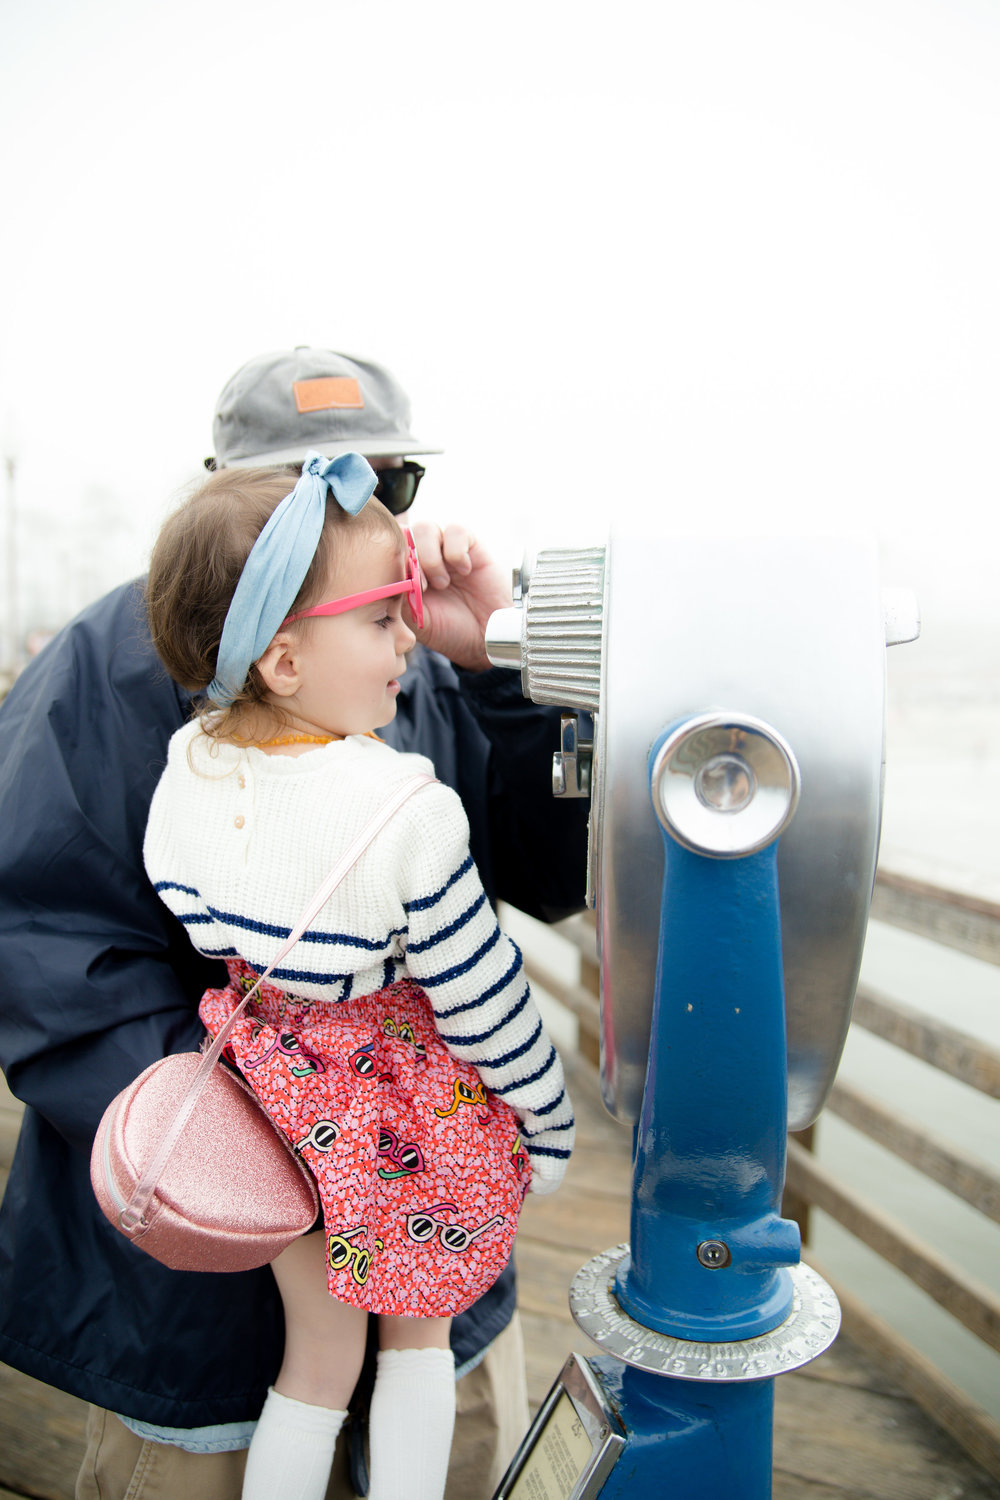 Dad lifting toddler daughter's sunglasses so she can see through the binoculars at the pier in Oceanside California